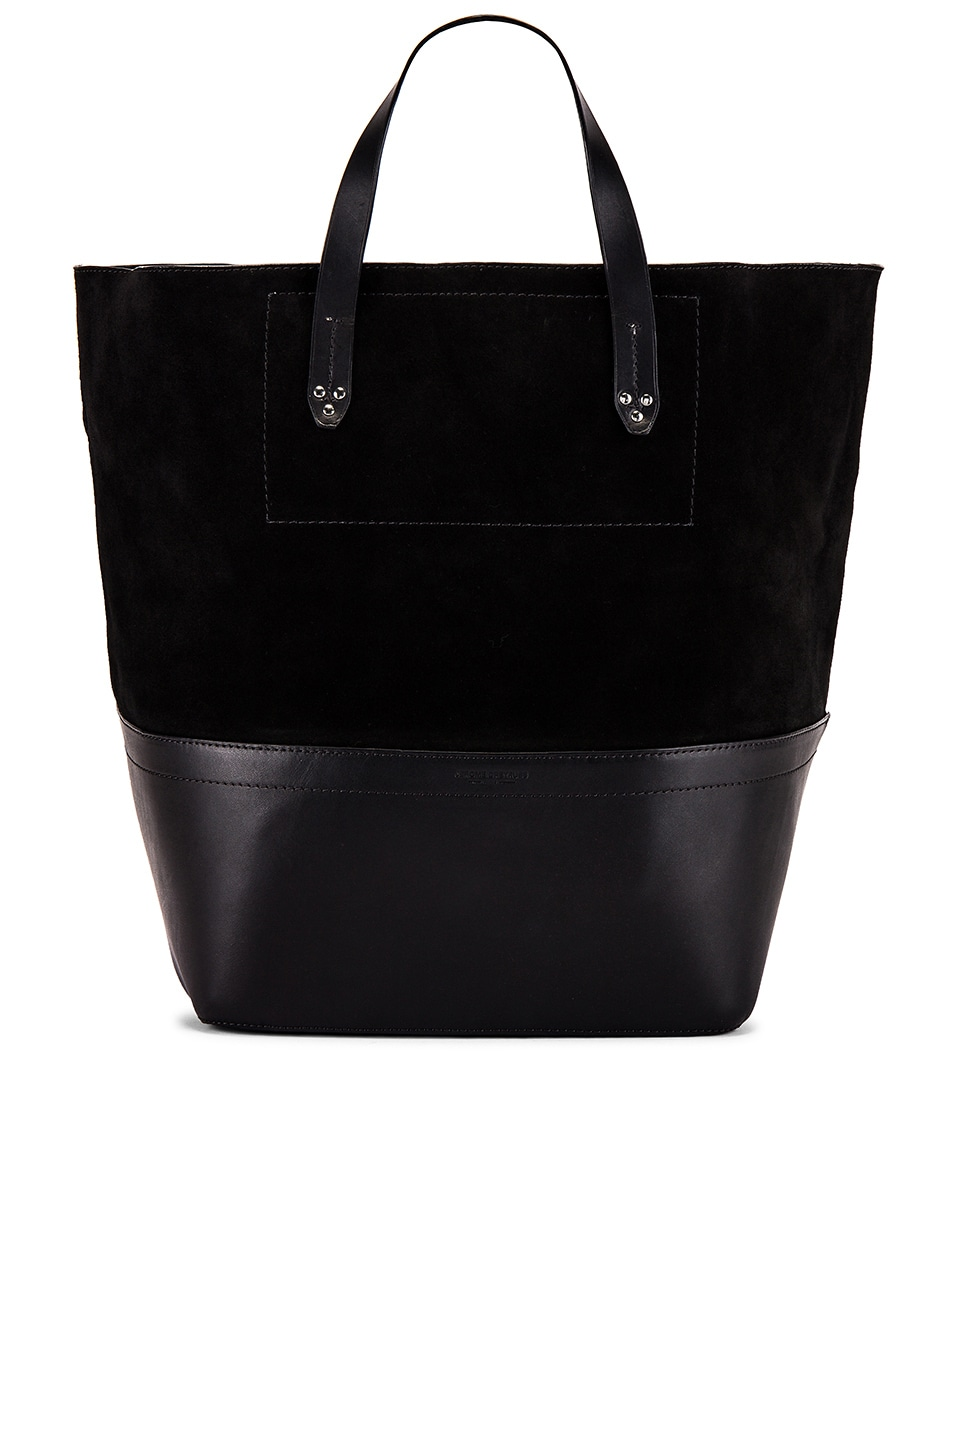 Jerome Dreyfuss Ariel Tote in Noir